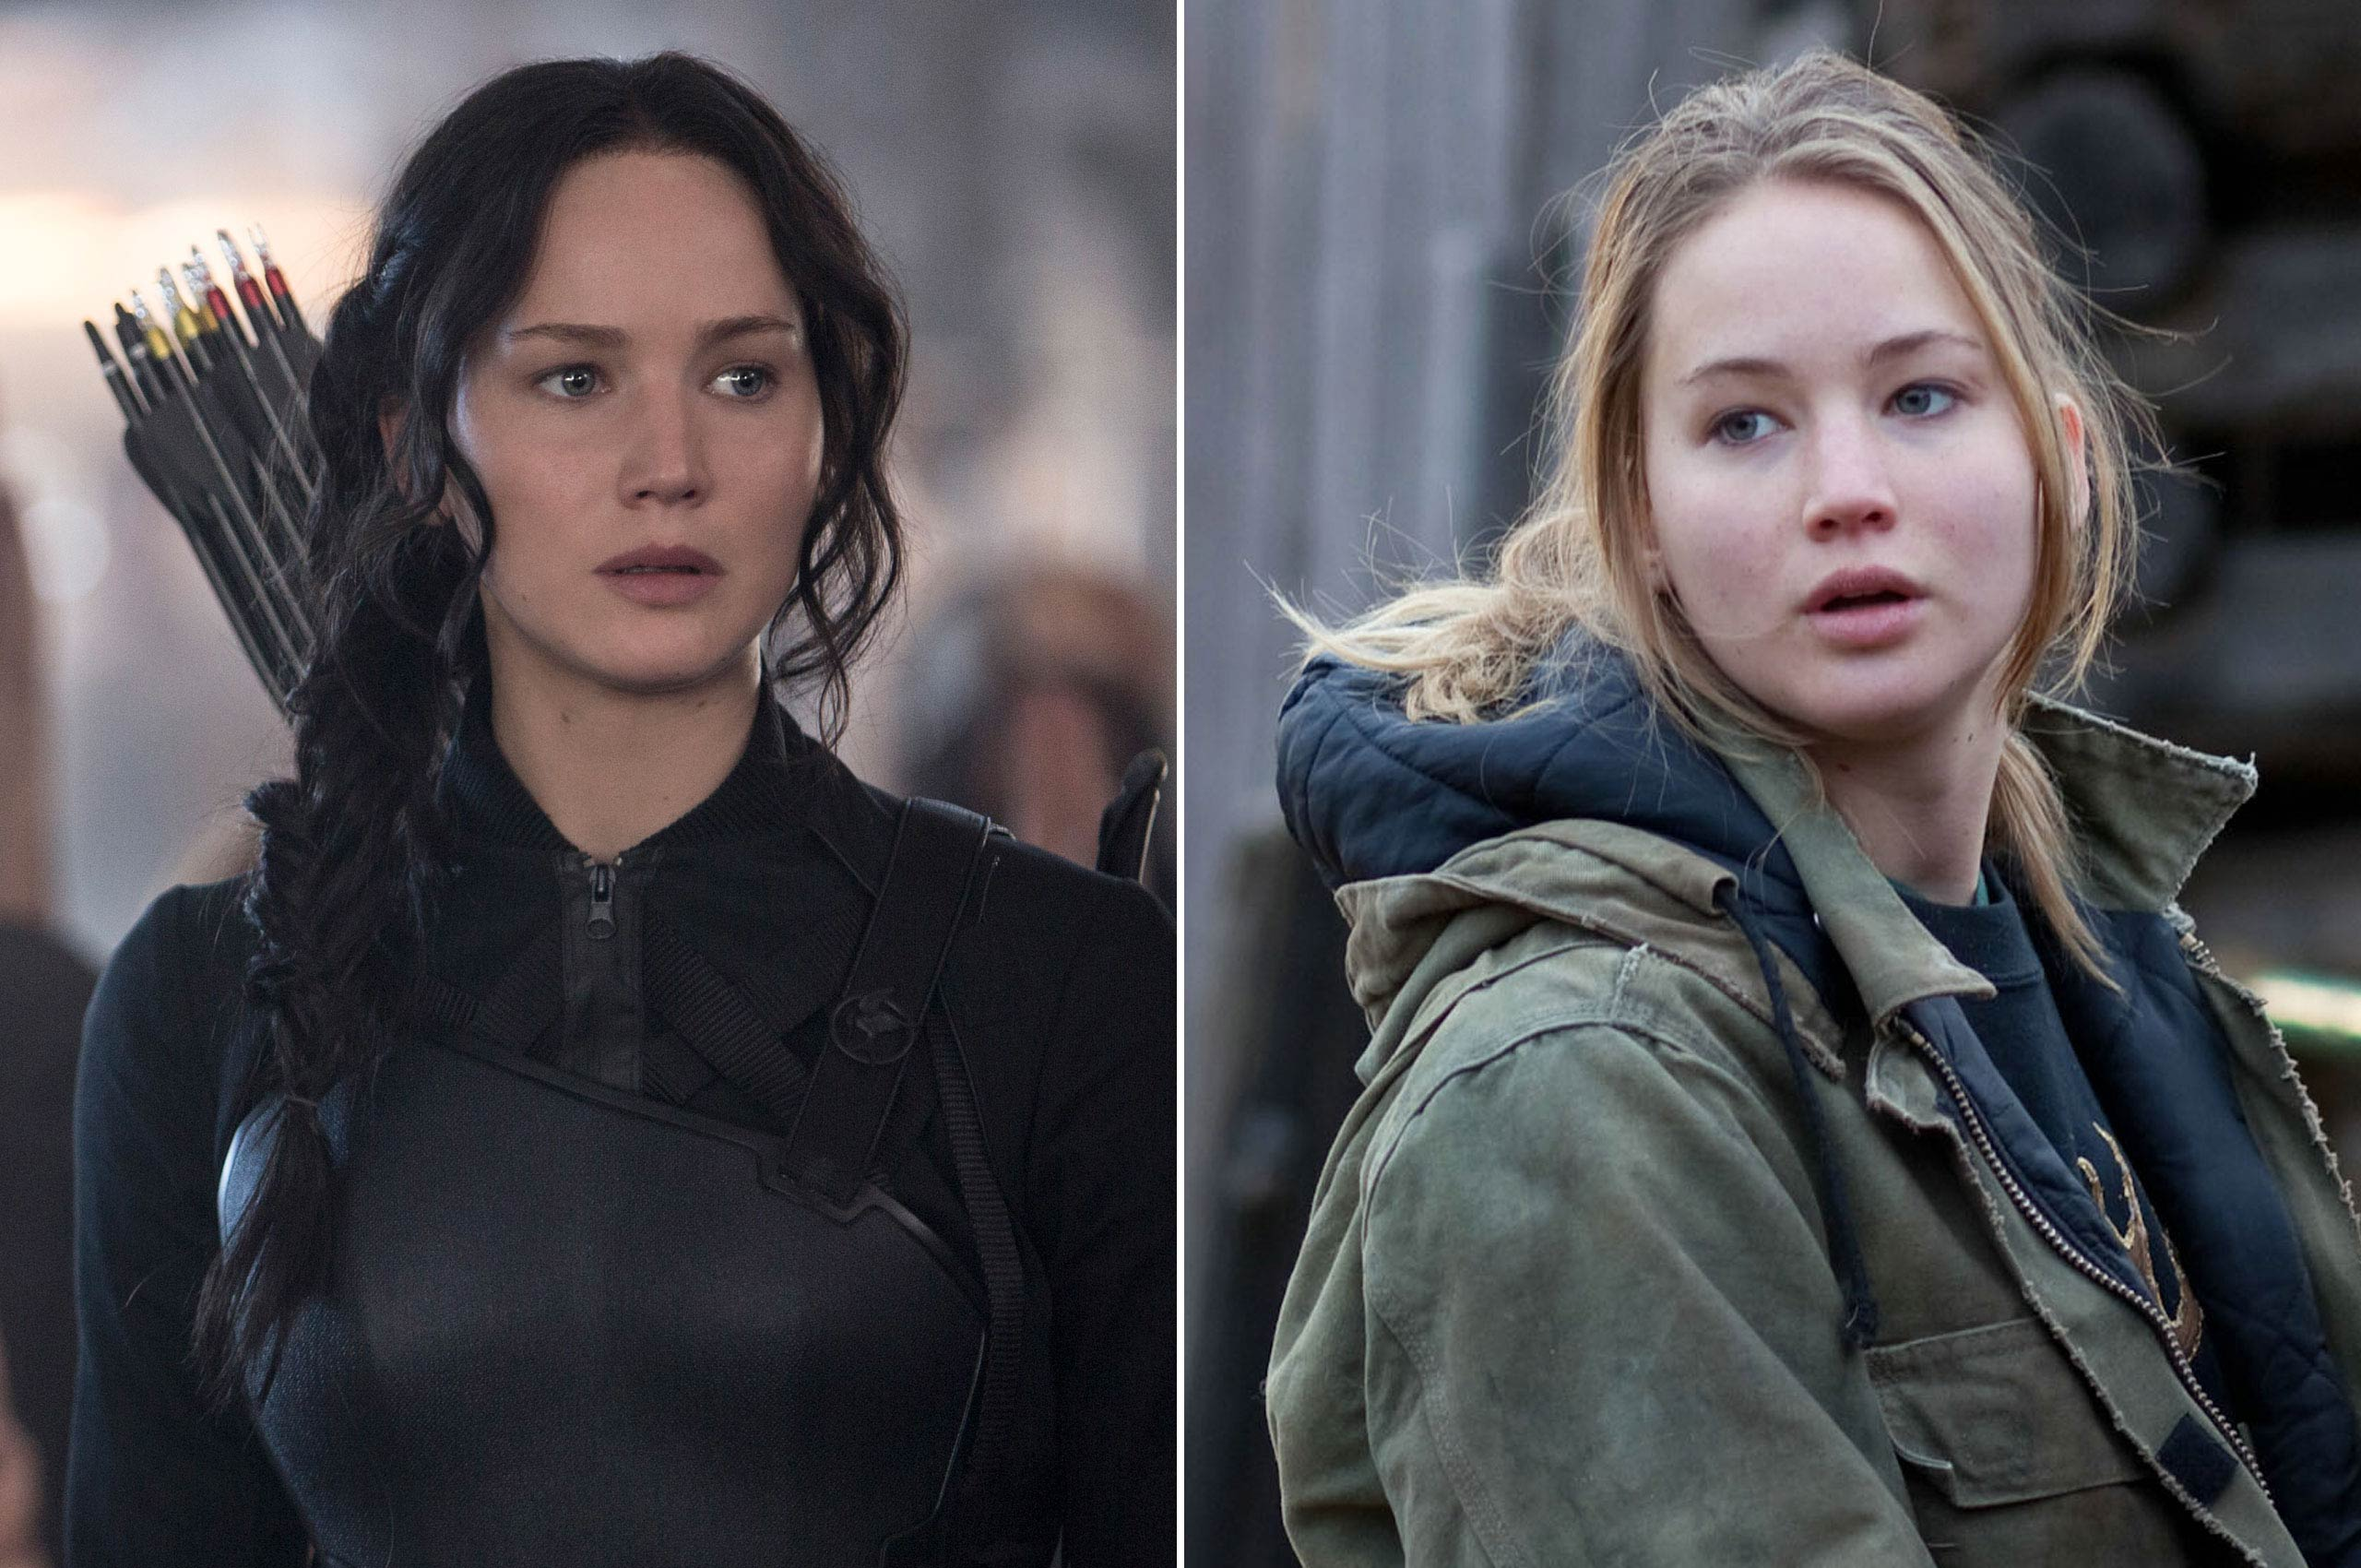 Jennifer Lawrence is a household name now thanks to roles like Katniss Everdeen in the <i>Hunger Games</i> movies, but back in 2010 she was still a relative unknown when she made her breakout performance as Ree Dolly in <i>Winter's Bone</i>.